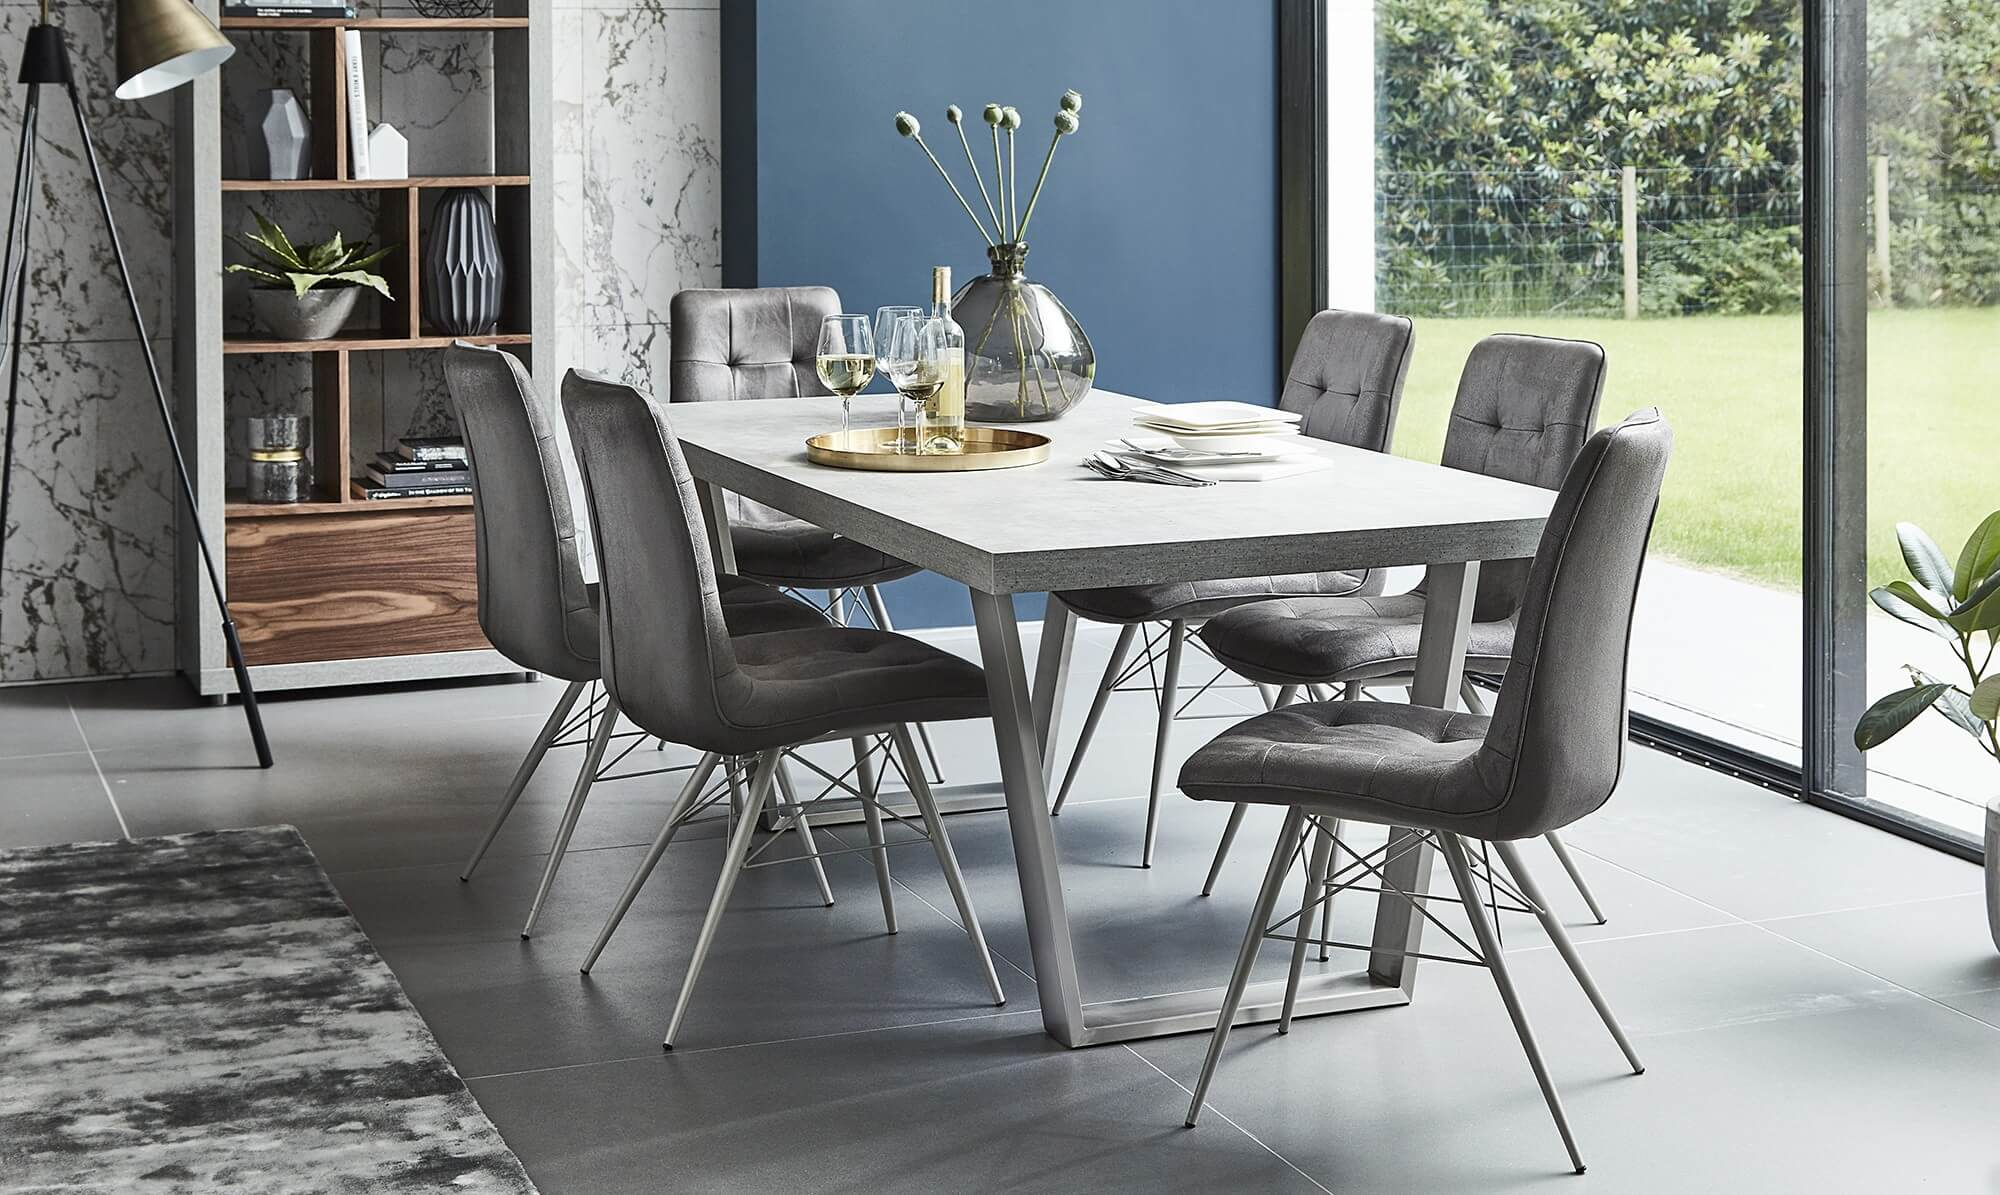 Amarna dining table set - Fishpools